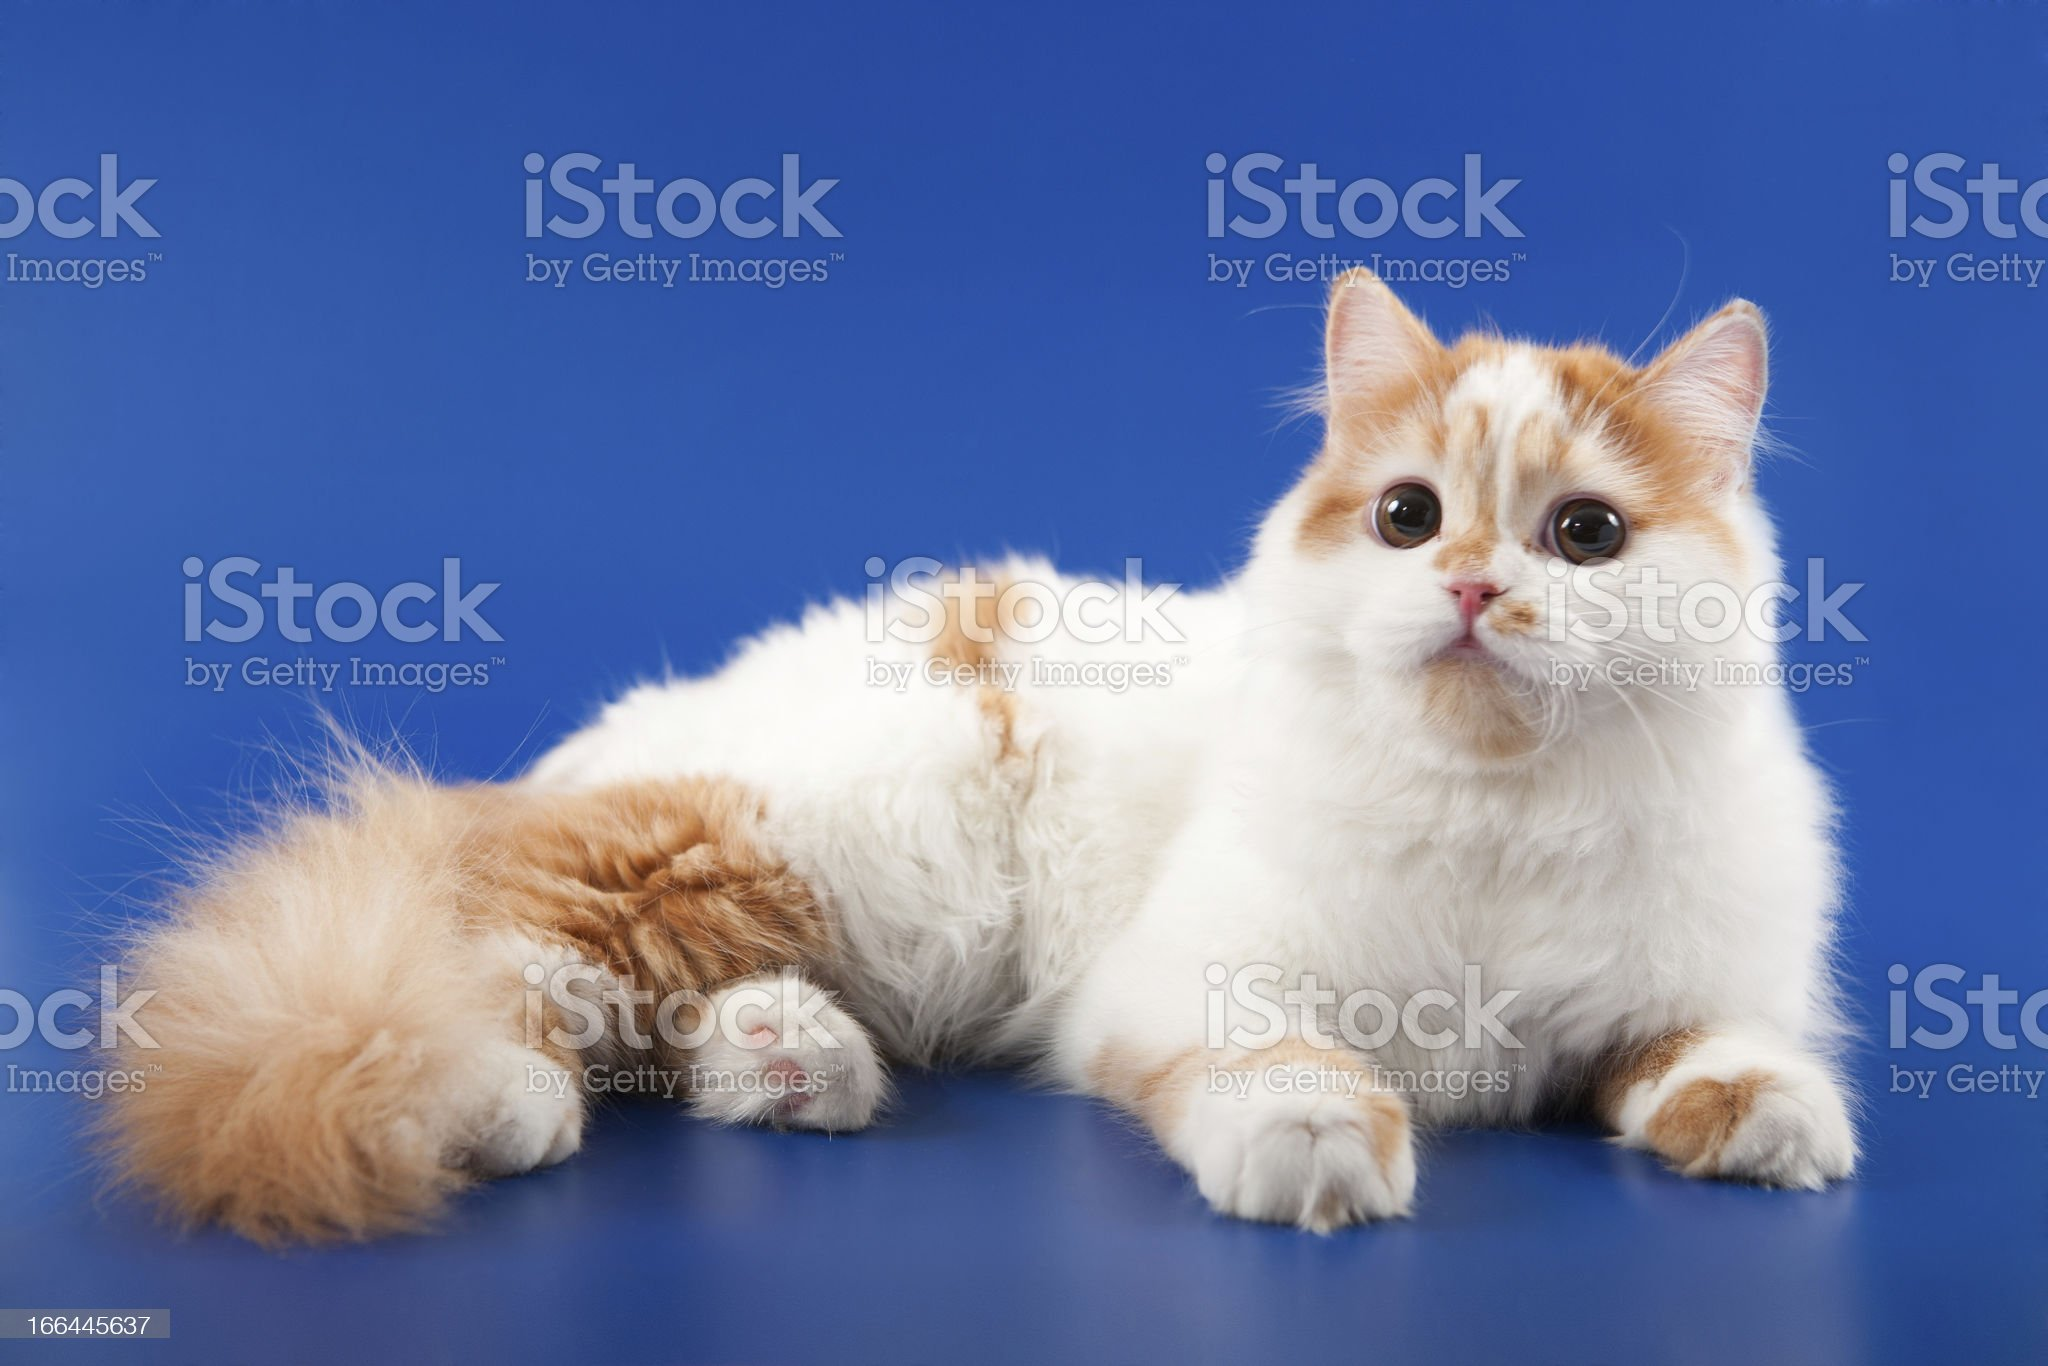 Kitten scottish straight breed royalty-free stock photo